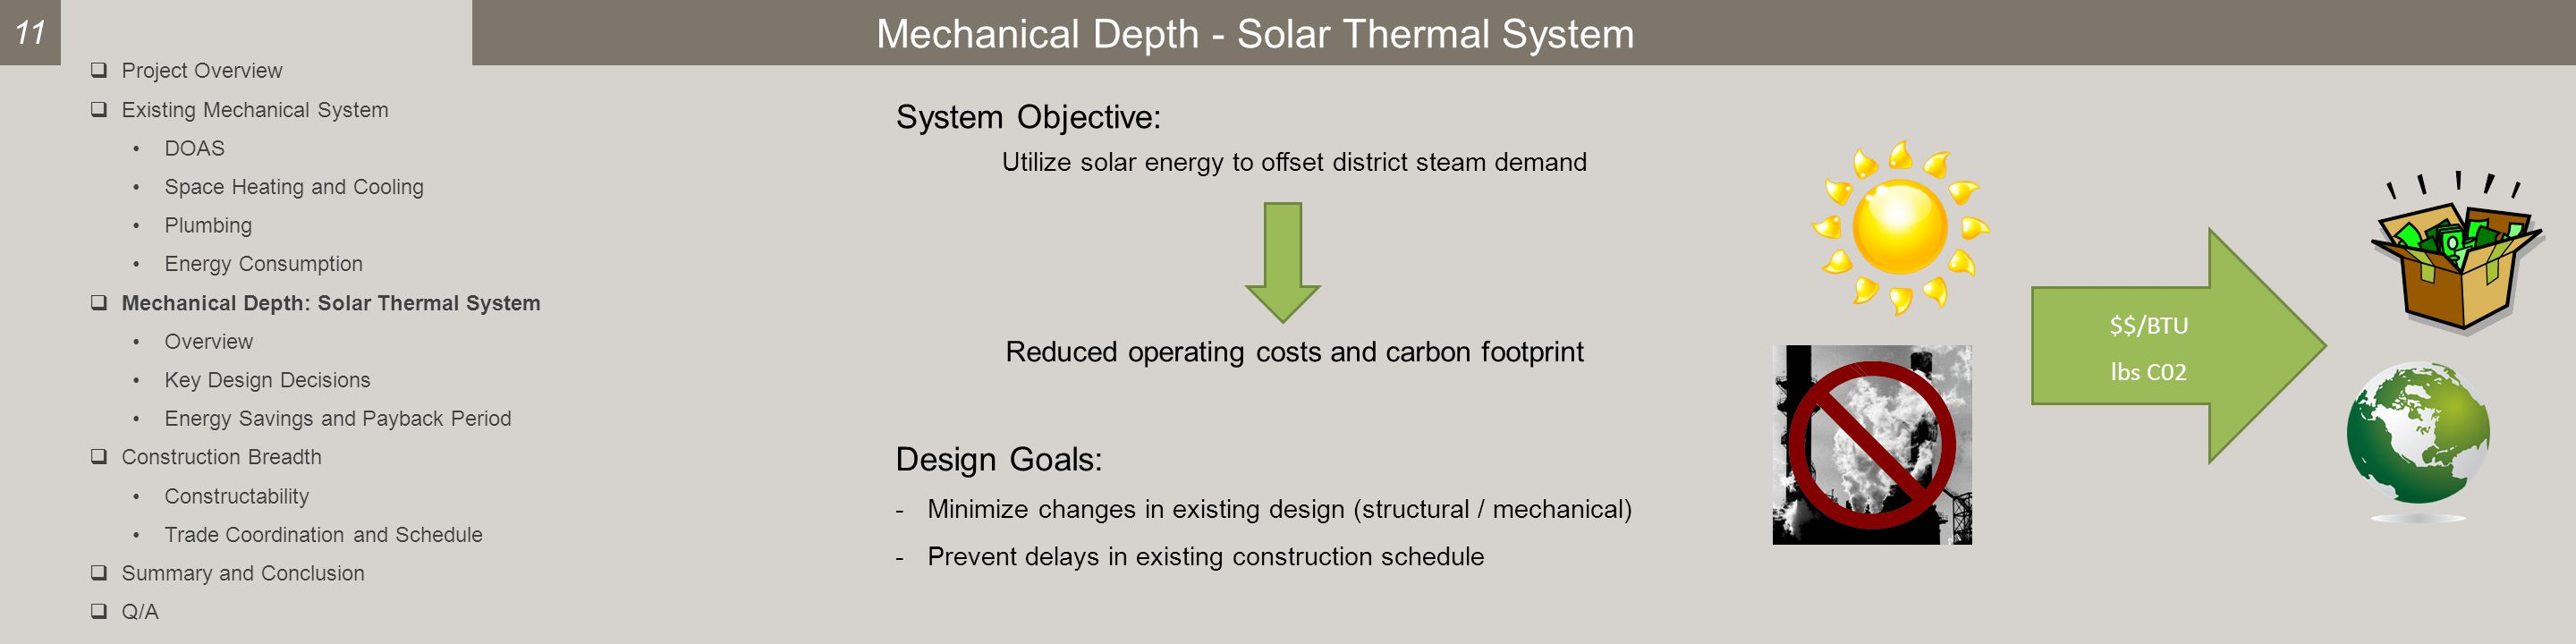 Mechanical Depth - Solar Thermal System System Objective: Utilize solar energy to offset district steam demand Reduced operating costs and carbon footprint $$/BTU lbs C02 11  Project Overview  Existing Mechanical System DOAS Space Heating and Cooling Plumbing Energy Consumption  Mechanical Depth: Solar Thermal System Overview Key Design Decisions Energy Savings and Payback Period  Construction Breadth Constructability Trade Coordination and Schedule  Summary and Conclusion  Q/A Design Goals: -Minimize changes in existing design (structural / mechanical) -Prevent delays in existing construction schedule